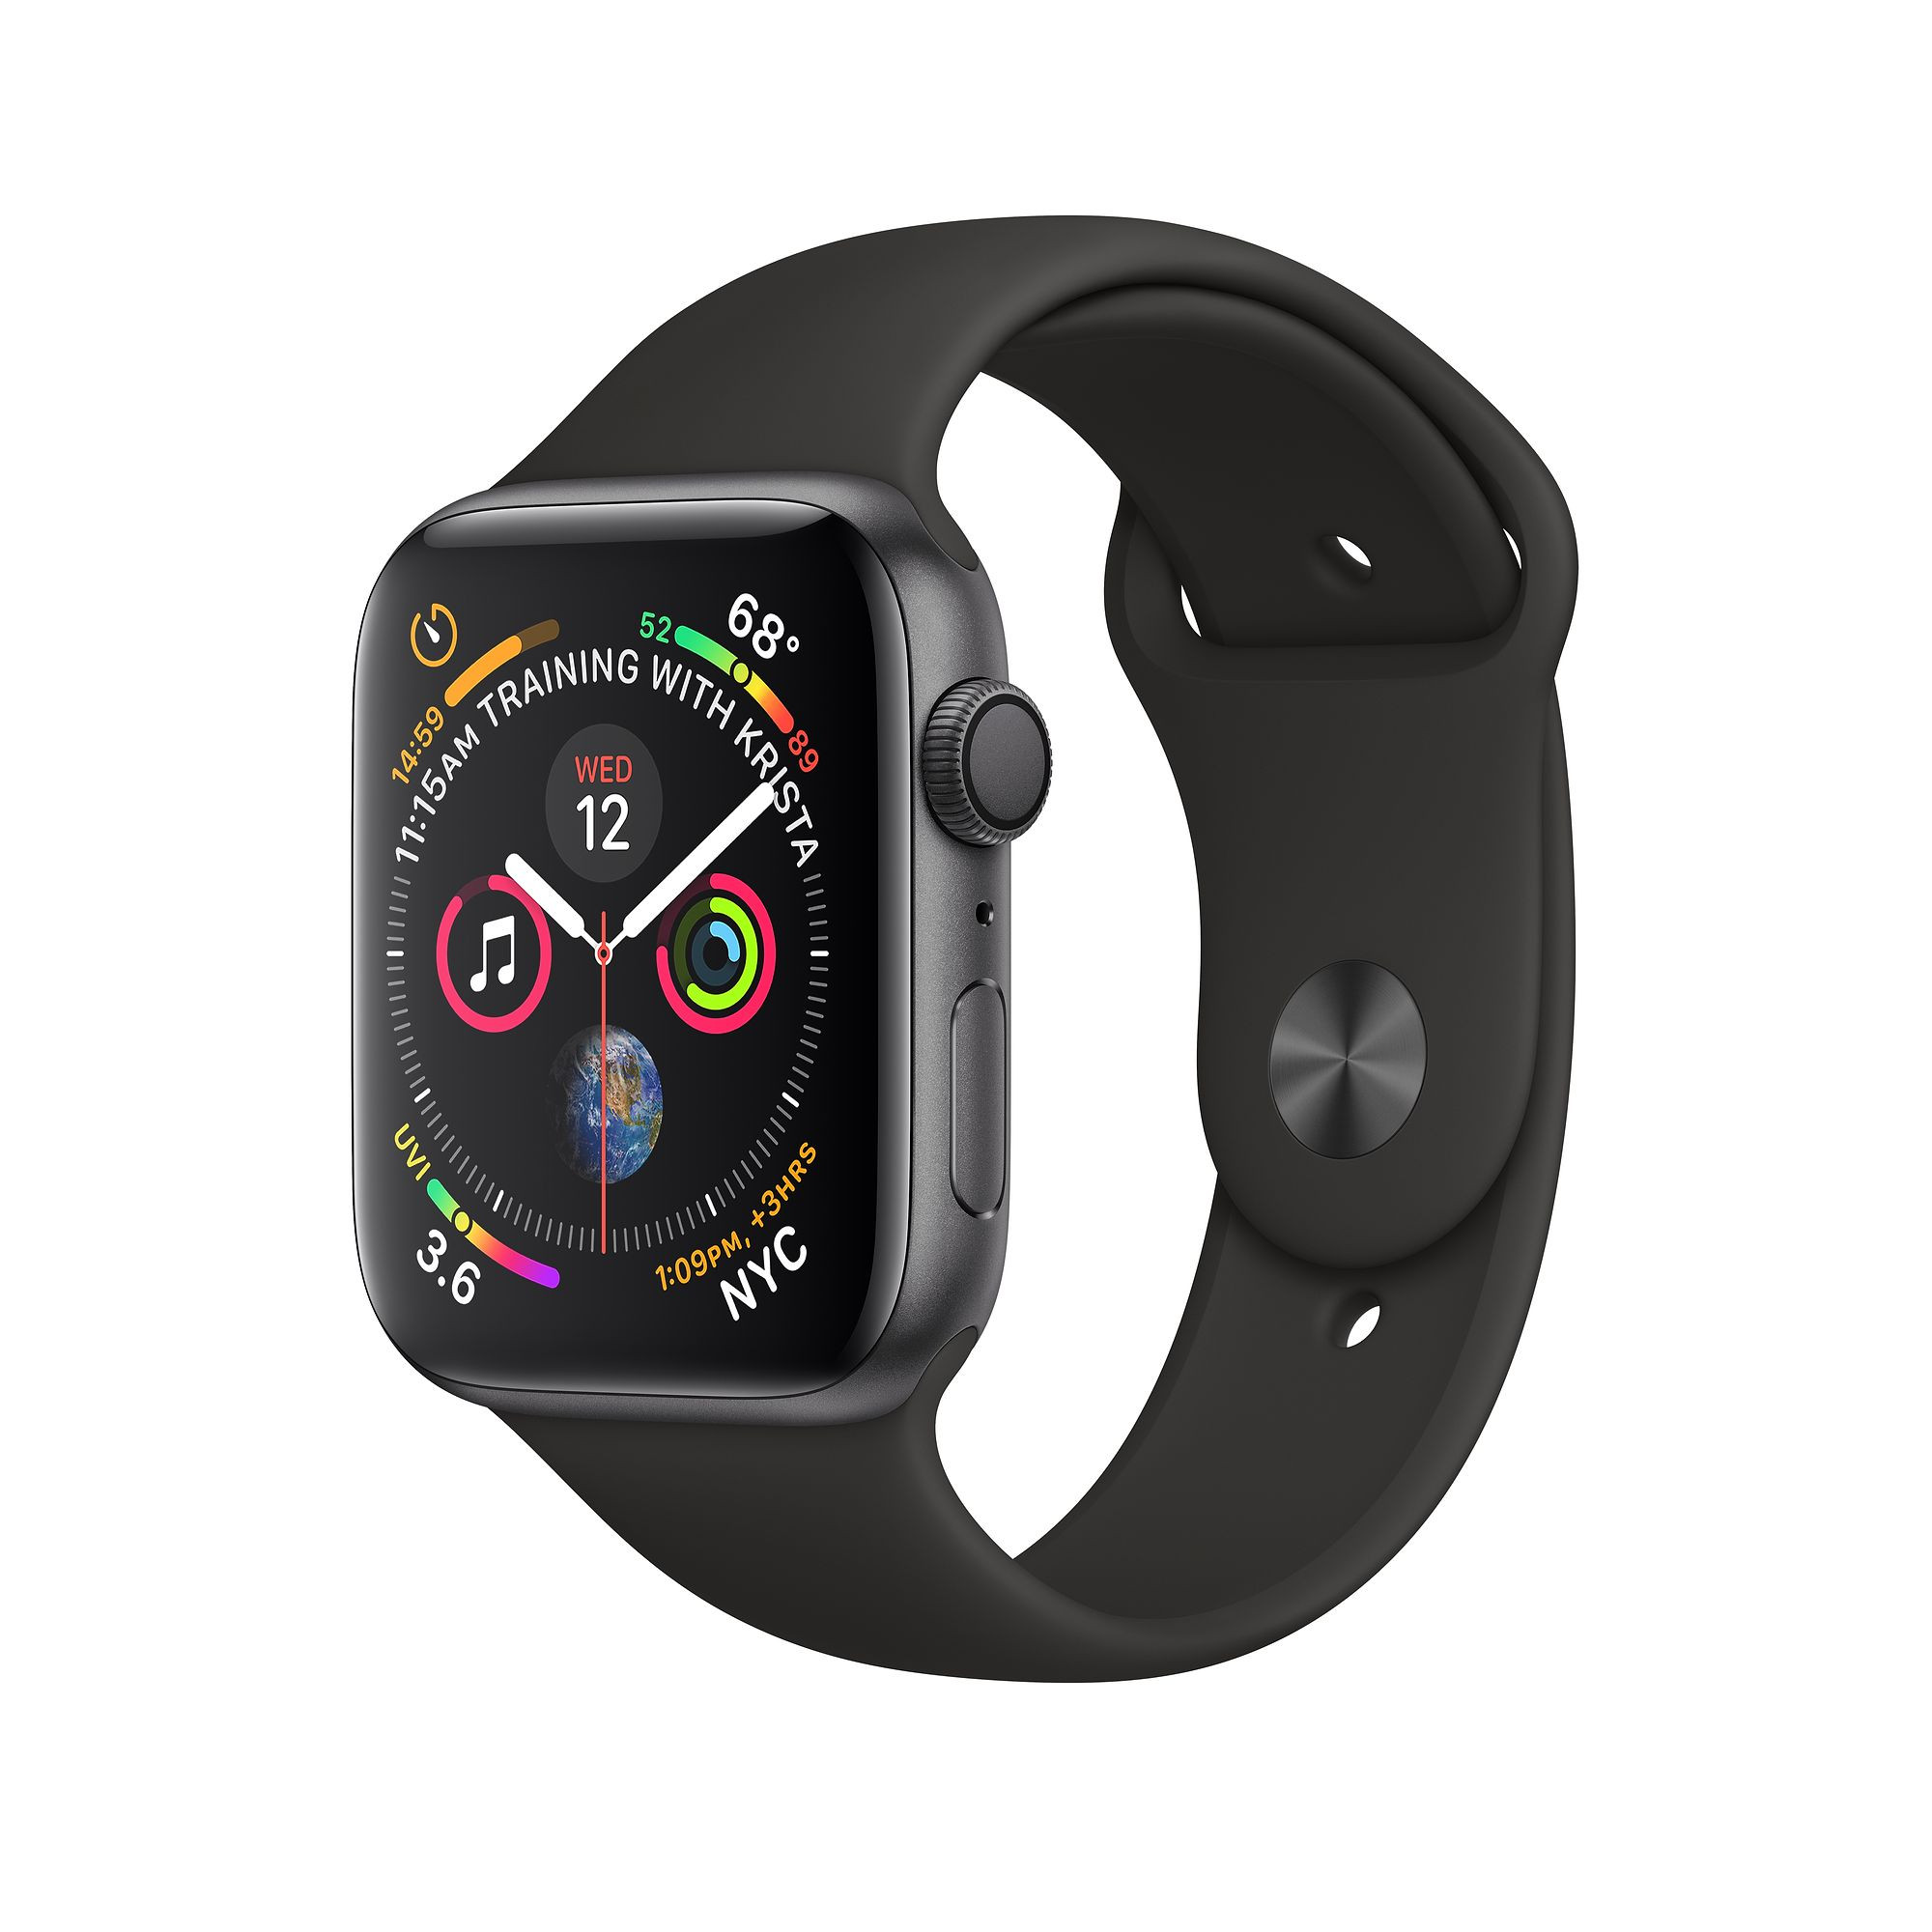 Apple Watch Series 4 (GPS) 44mm Space Gray Aluminum Case with Black Sport Band